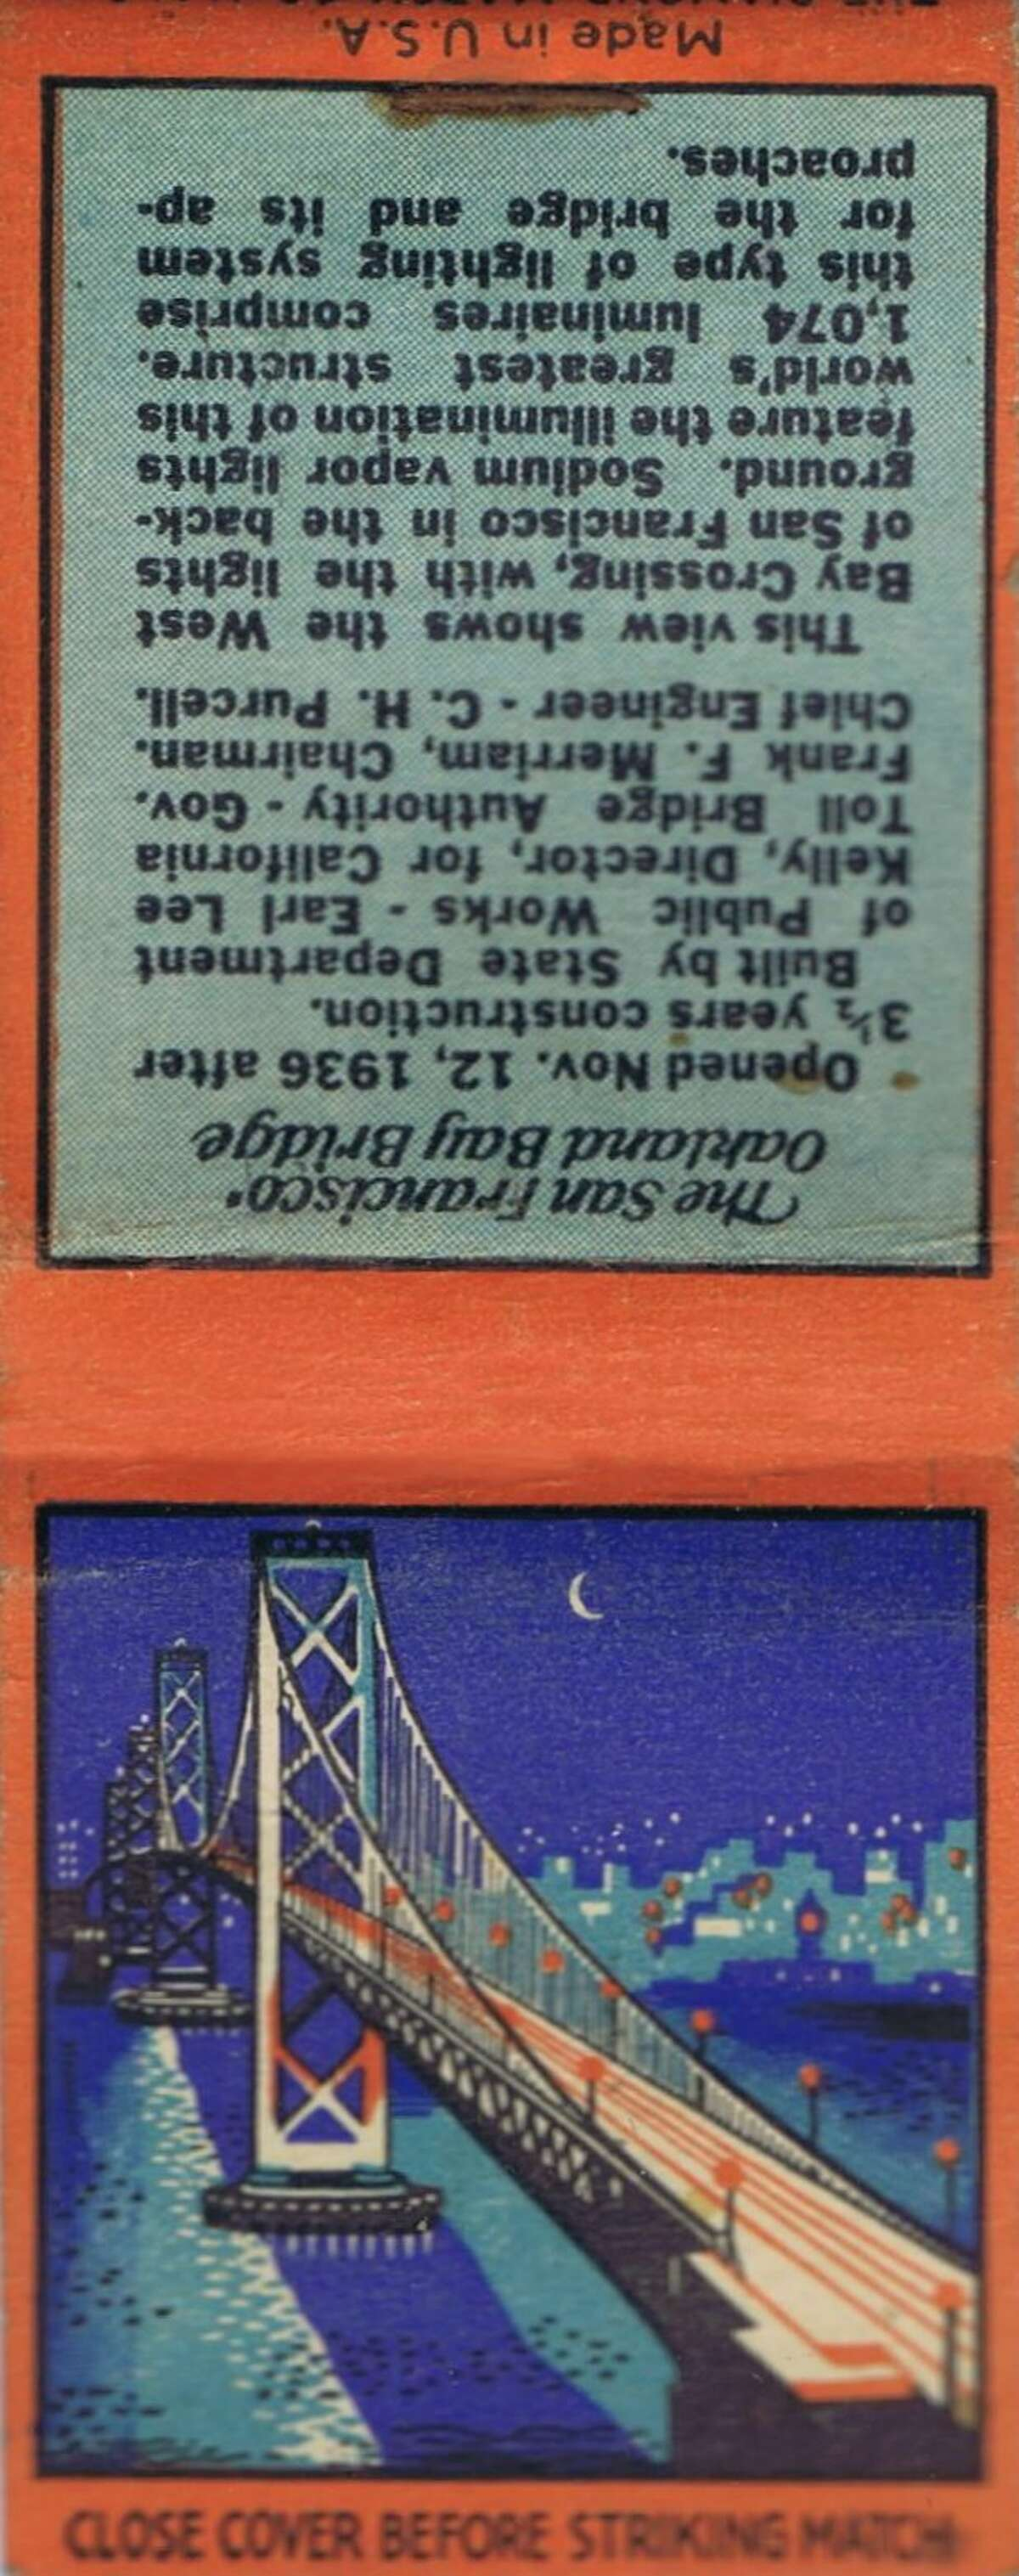 Vintage matchbooks from the 1940s, with San Francisco related covers. From the collection of Bob Bragman